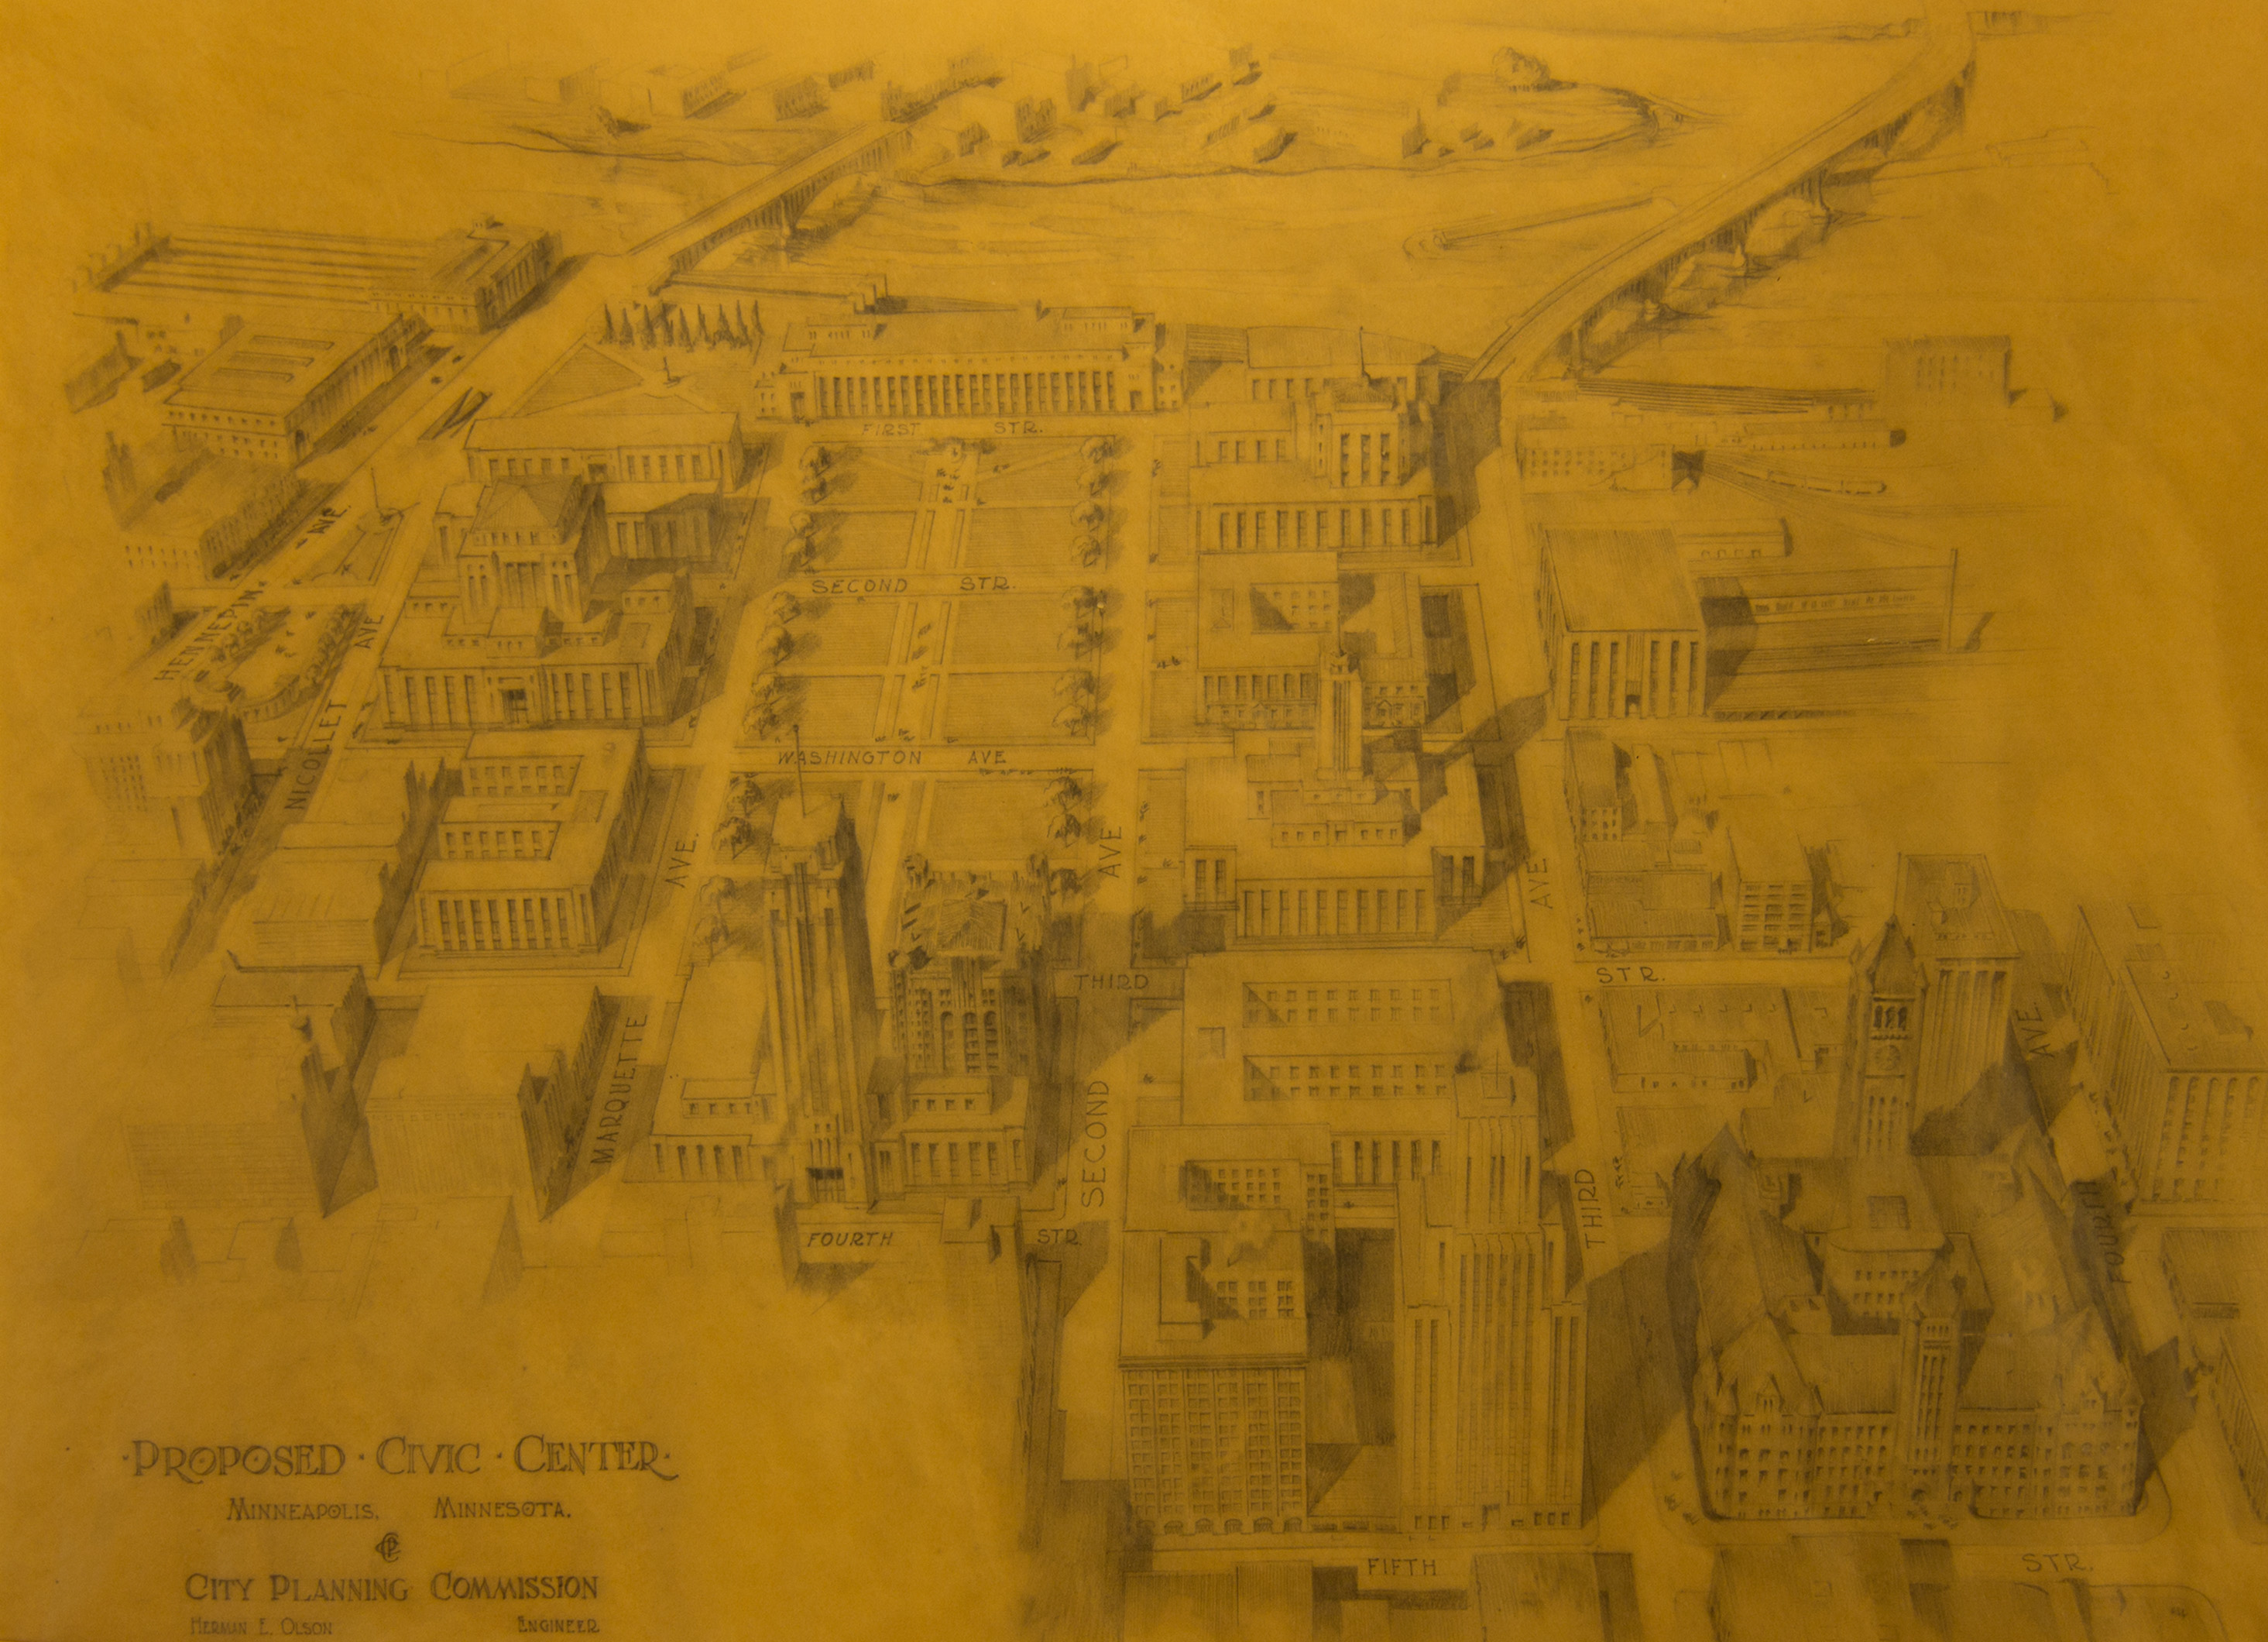 plan for civic center, 1934, city archives